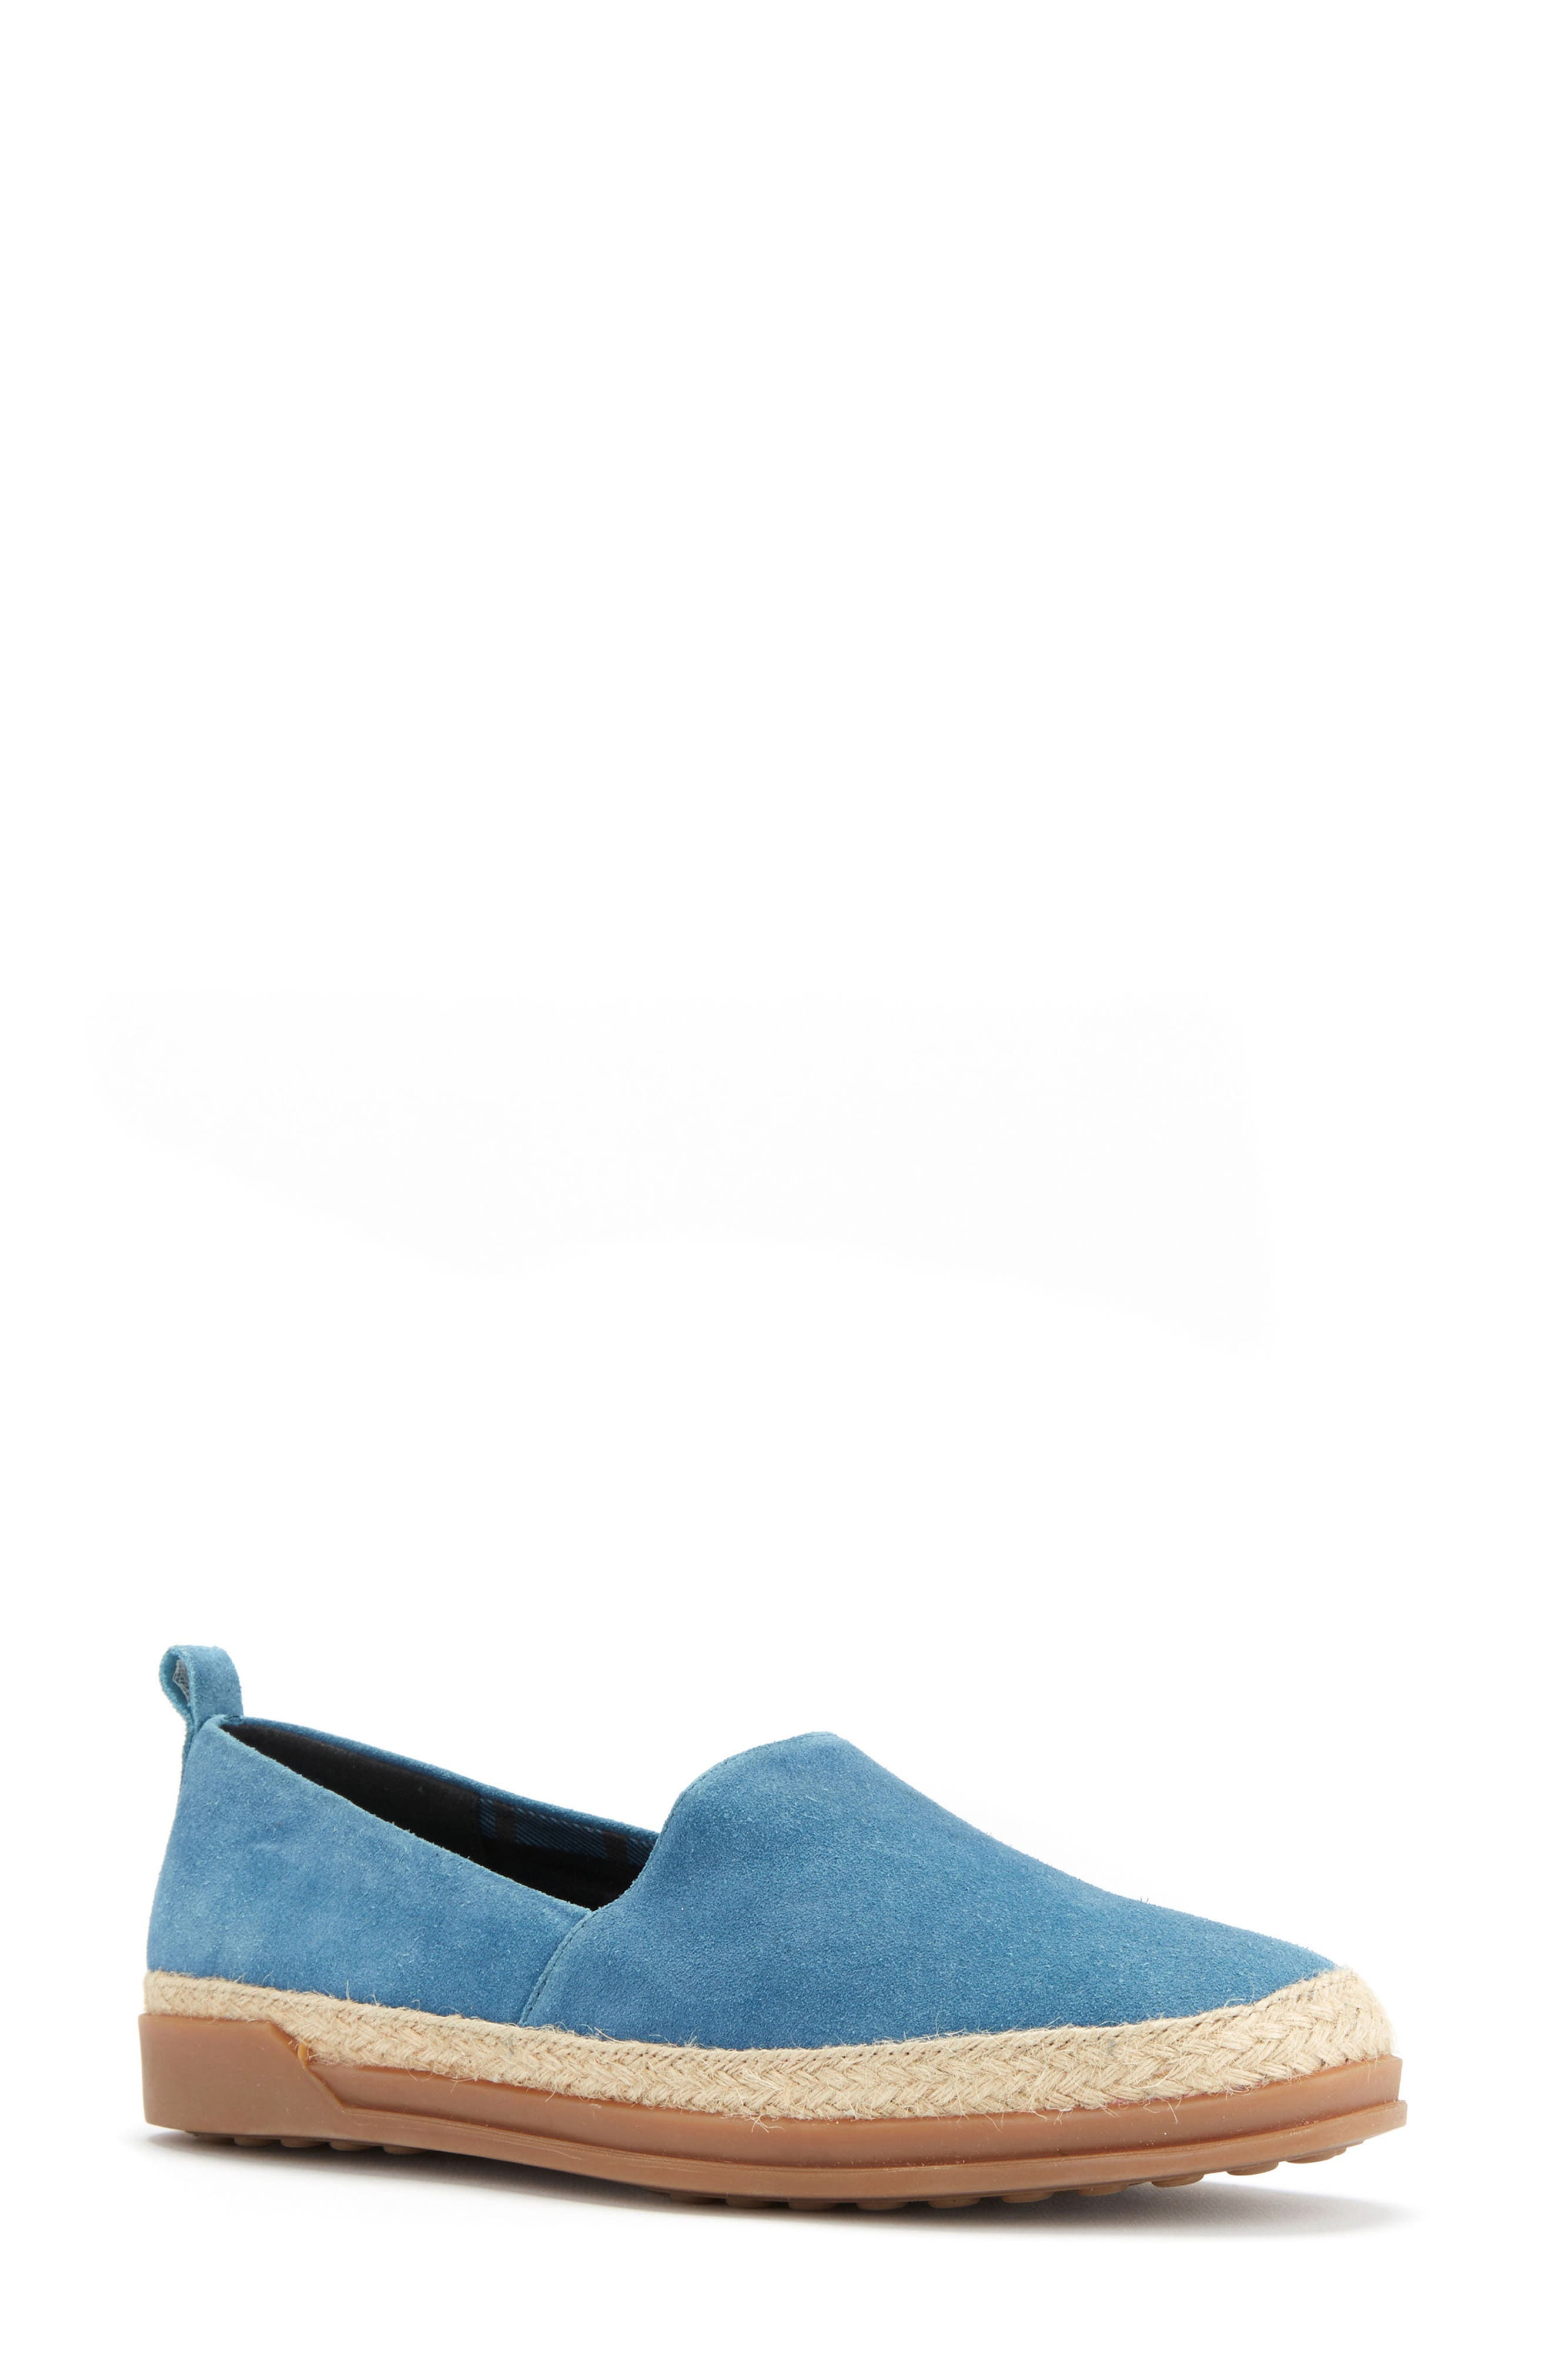 Alternate Image 1 Selected - Blondo Bailey Espadrille Flat (Women)